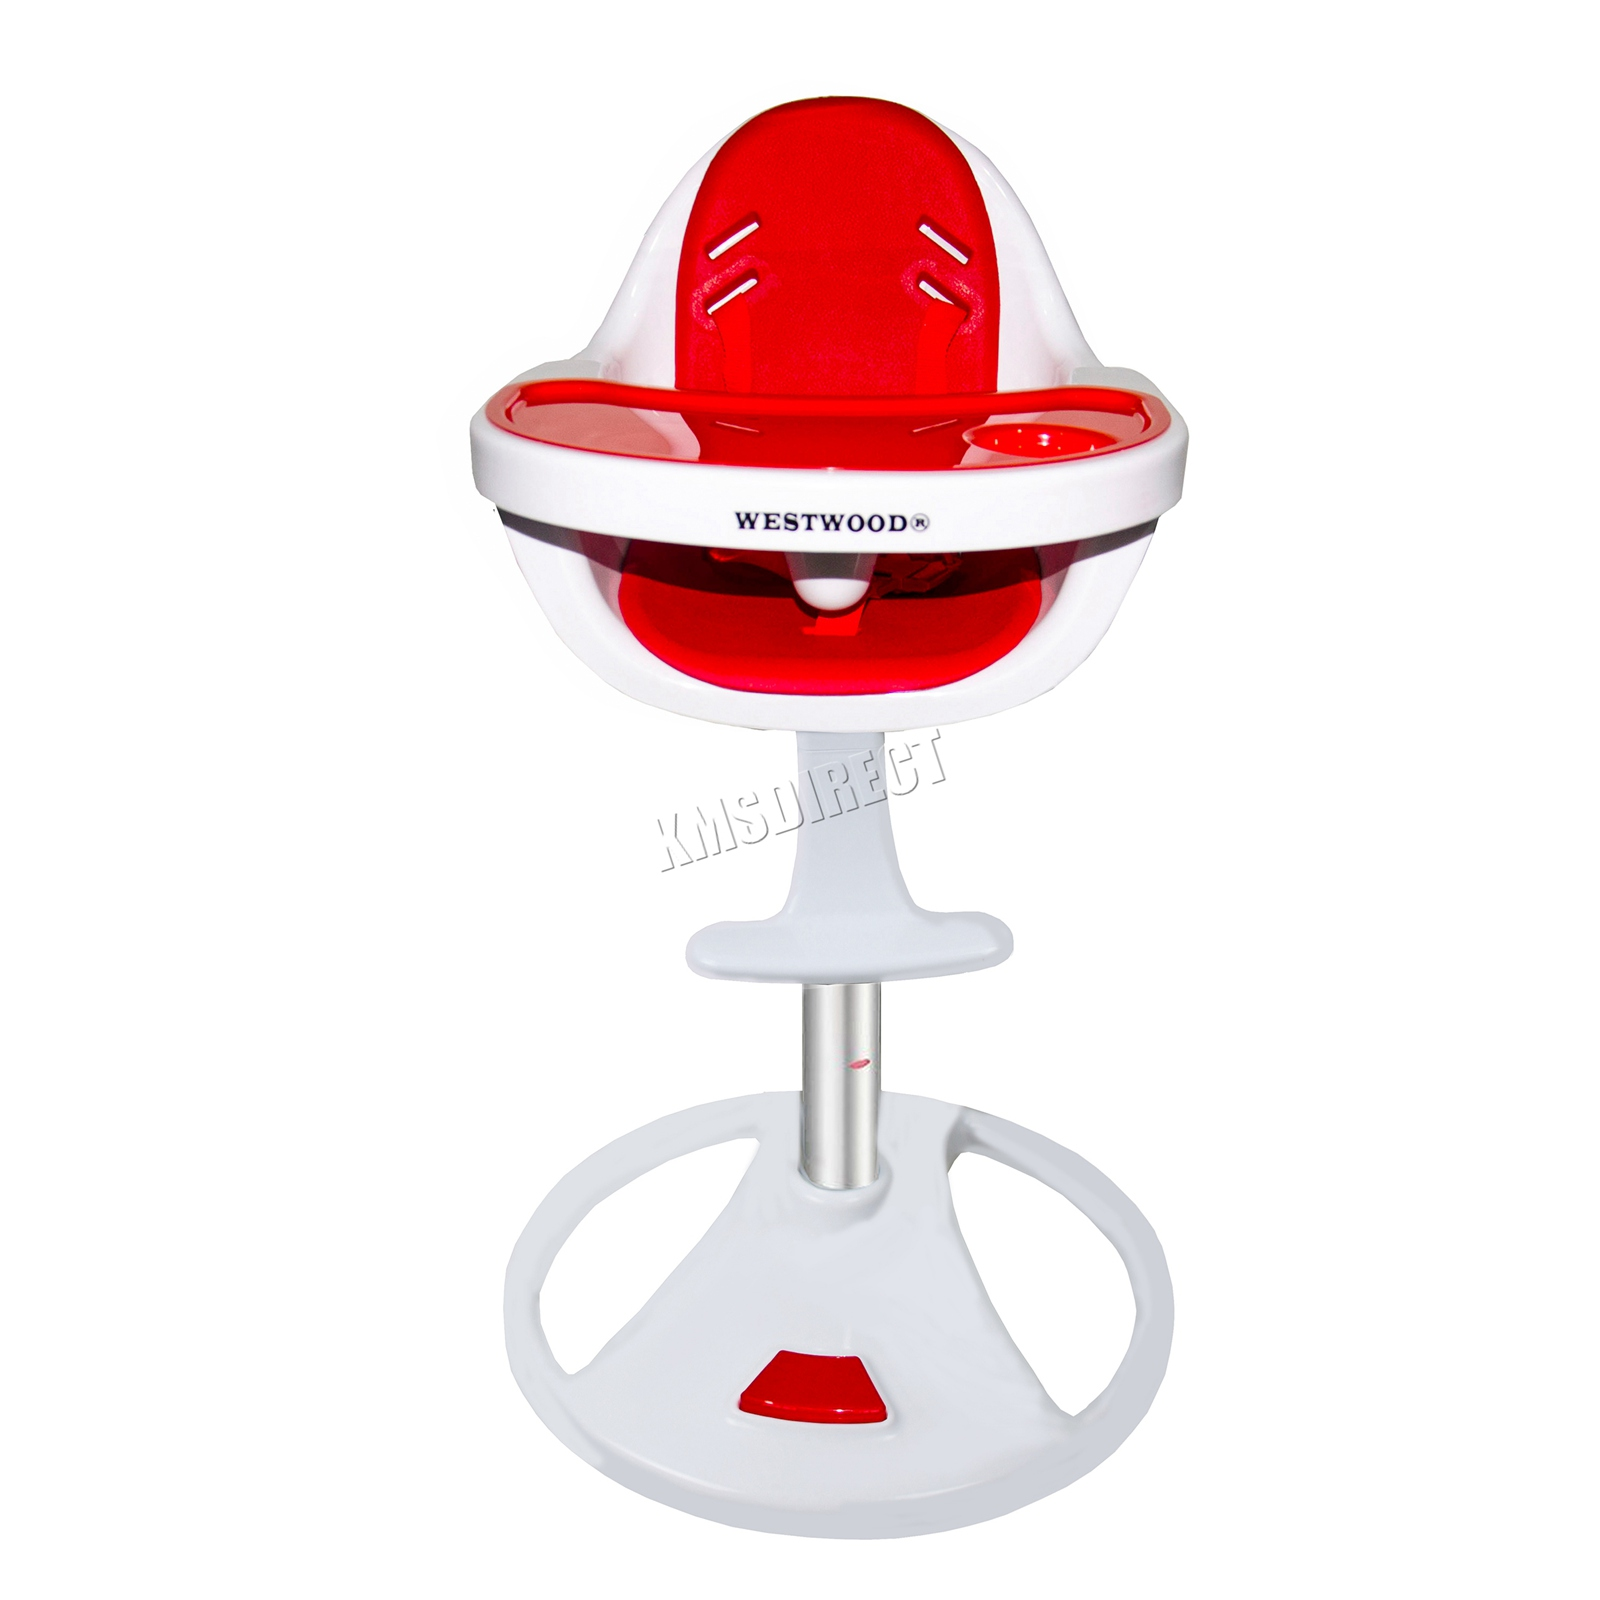 WestWood-360-Swivel-Baby-Highchair-Infant-feeding-Seat-Table-High-Chair-BHC03 thumbnail 32